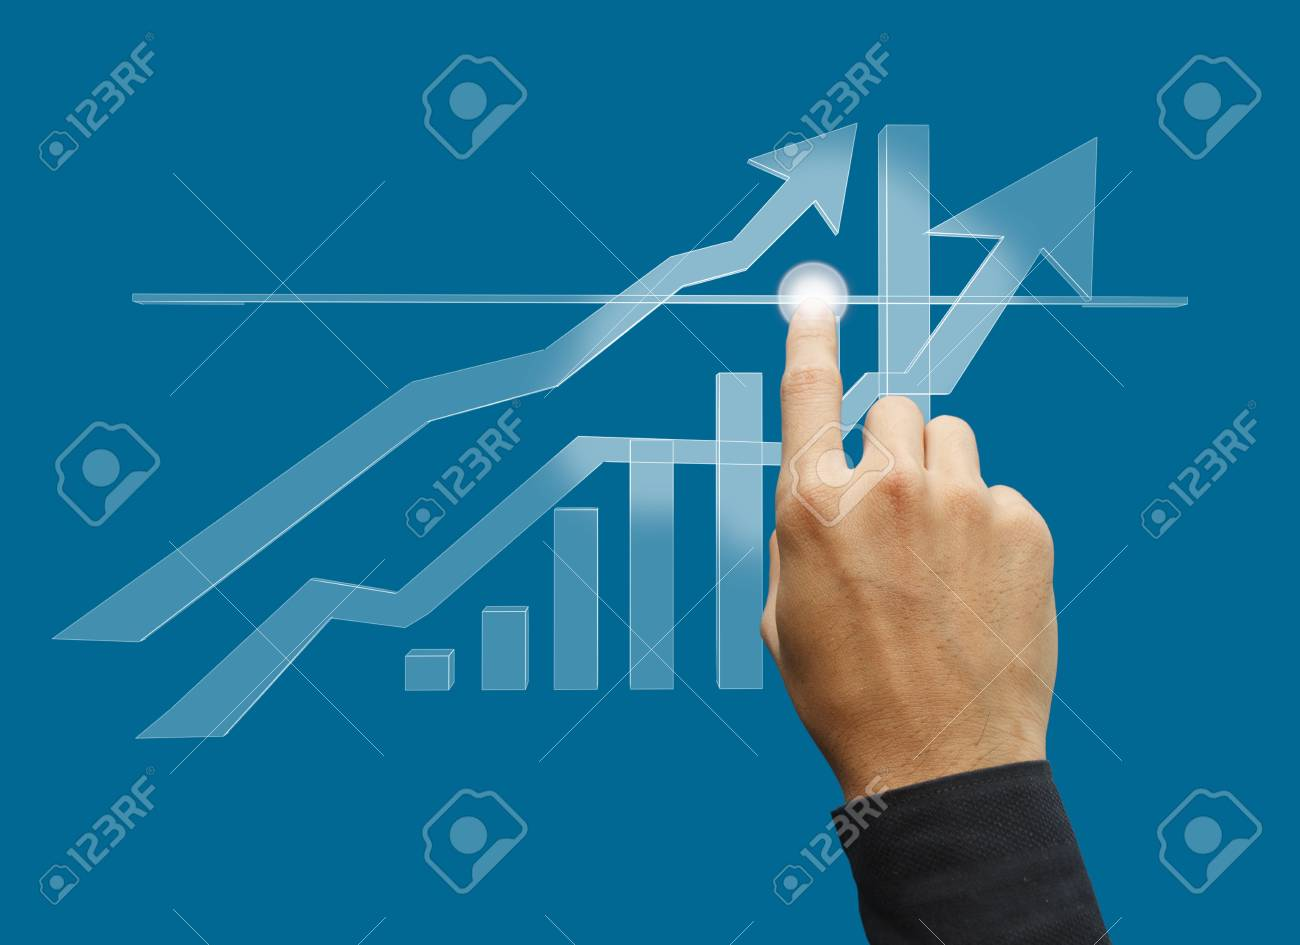 Business hand working business Stock Photo - 16087675